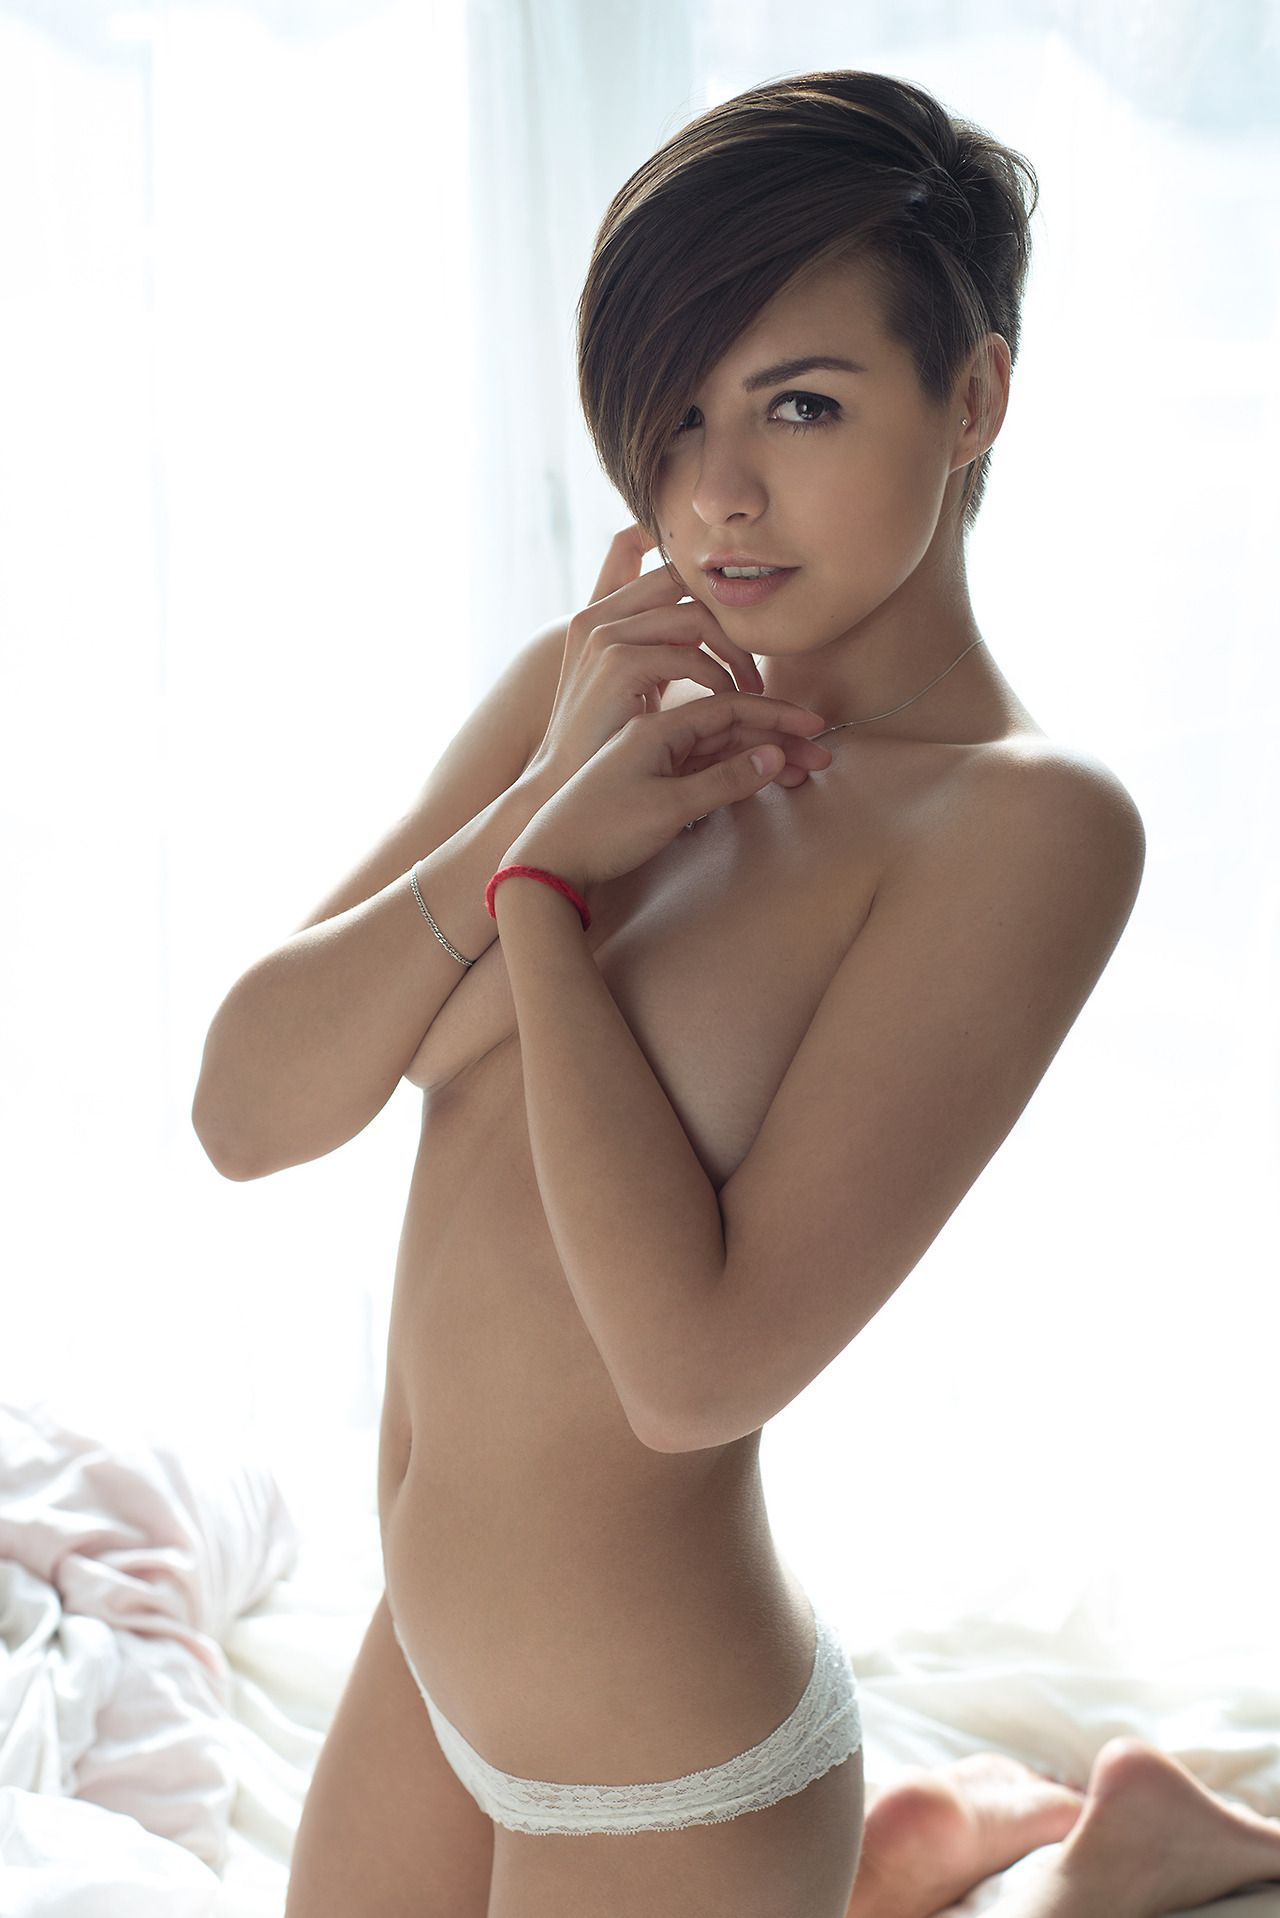 short-hairstyle-naked-hot-girls-eat-the-best